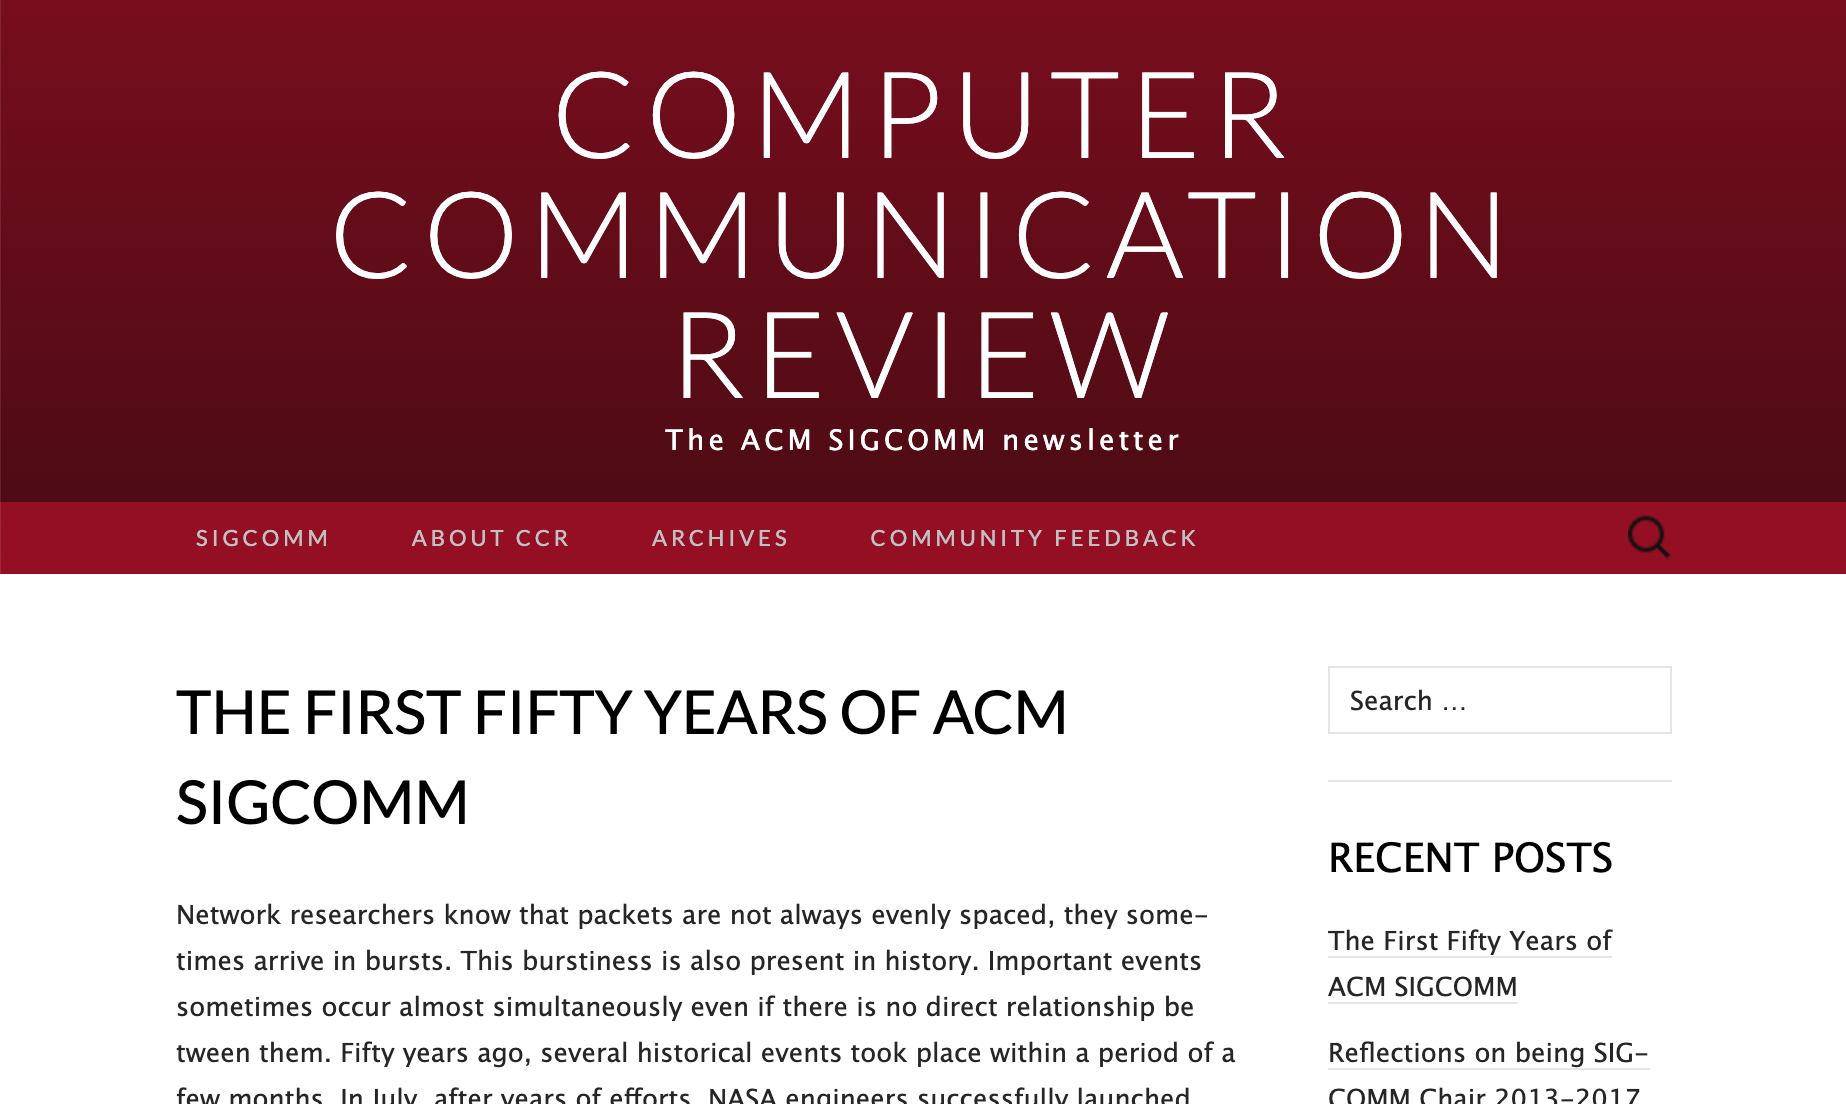 https://ccronline.sigcomm.org/2019/ccr-october-2019/the-first-fifty-years-of-acm-sigcomm/